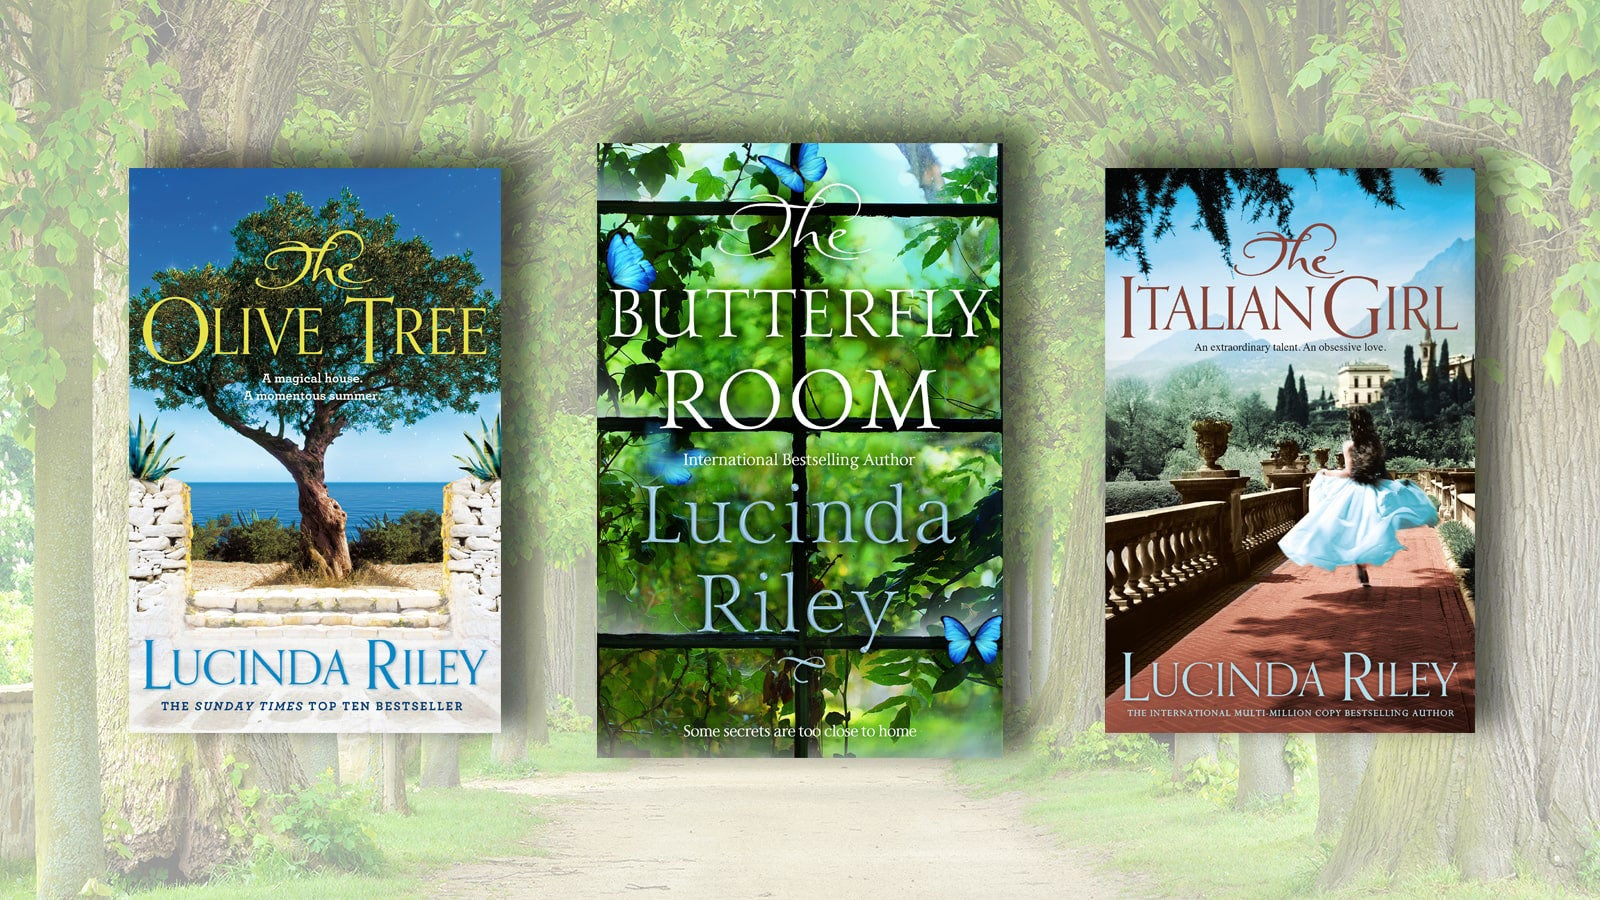 Book covers of the Olive Tree, The Butterfly Room and The Italian Girl on a background of a faded forest